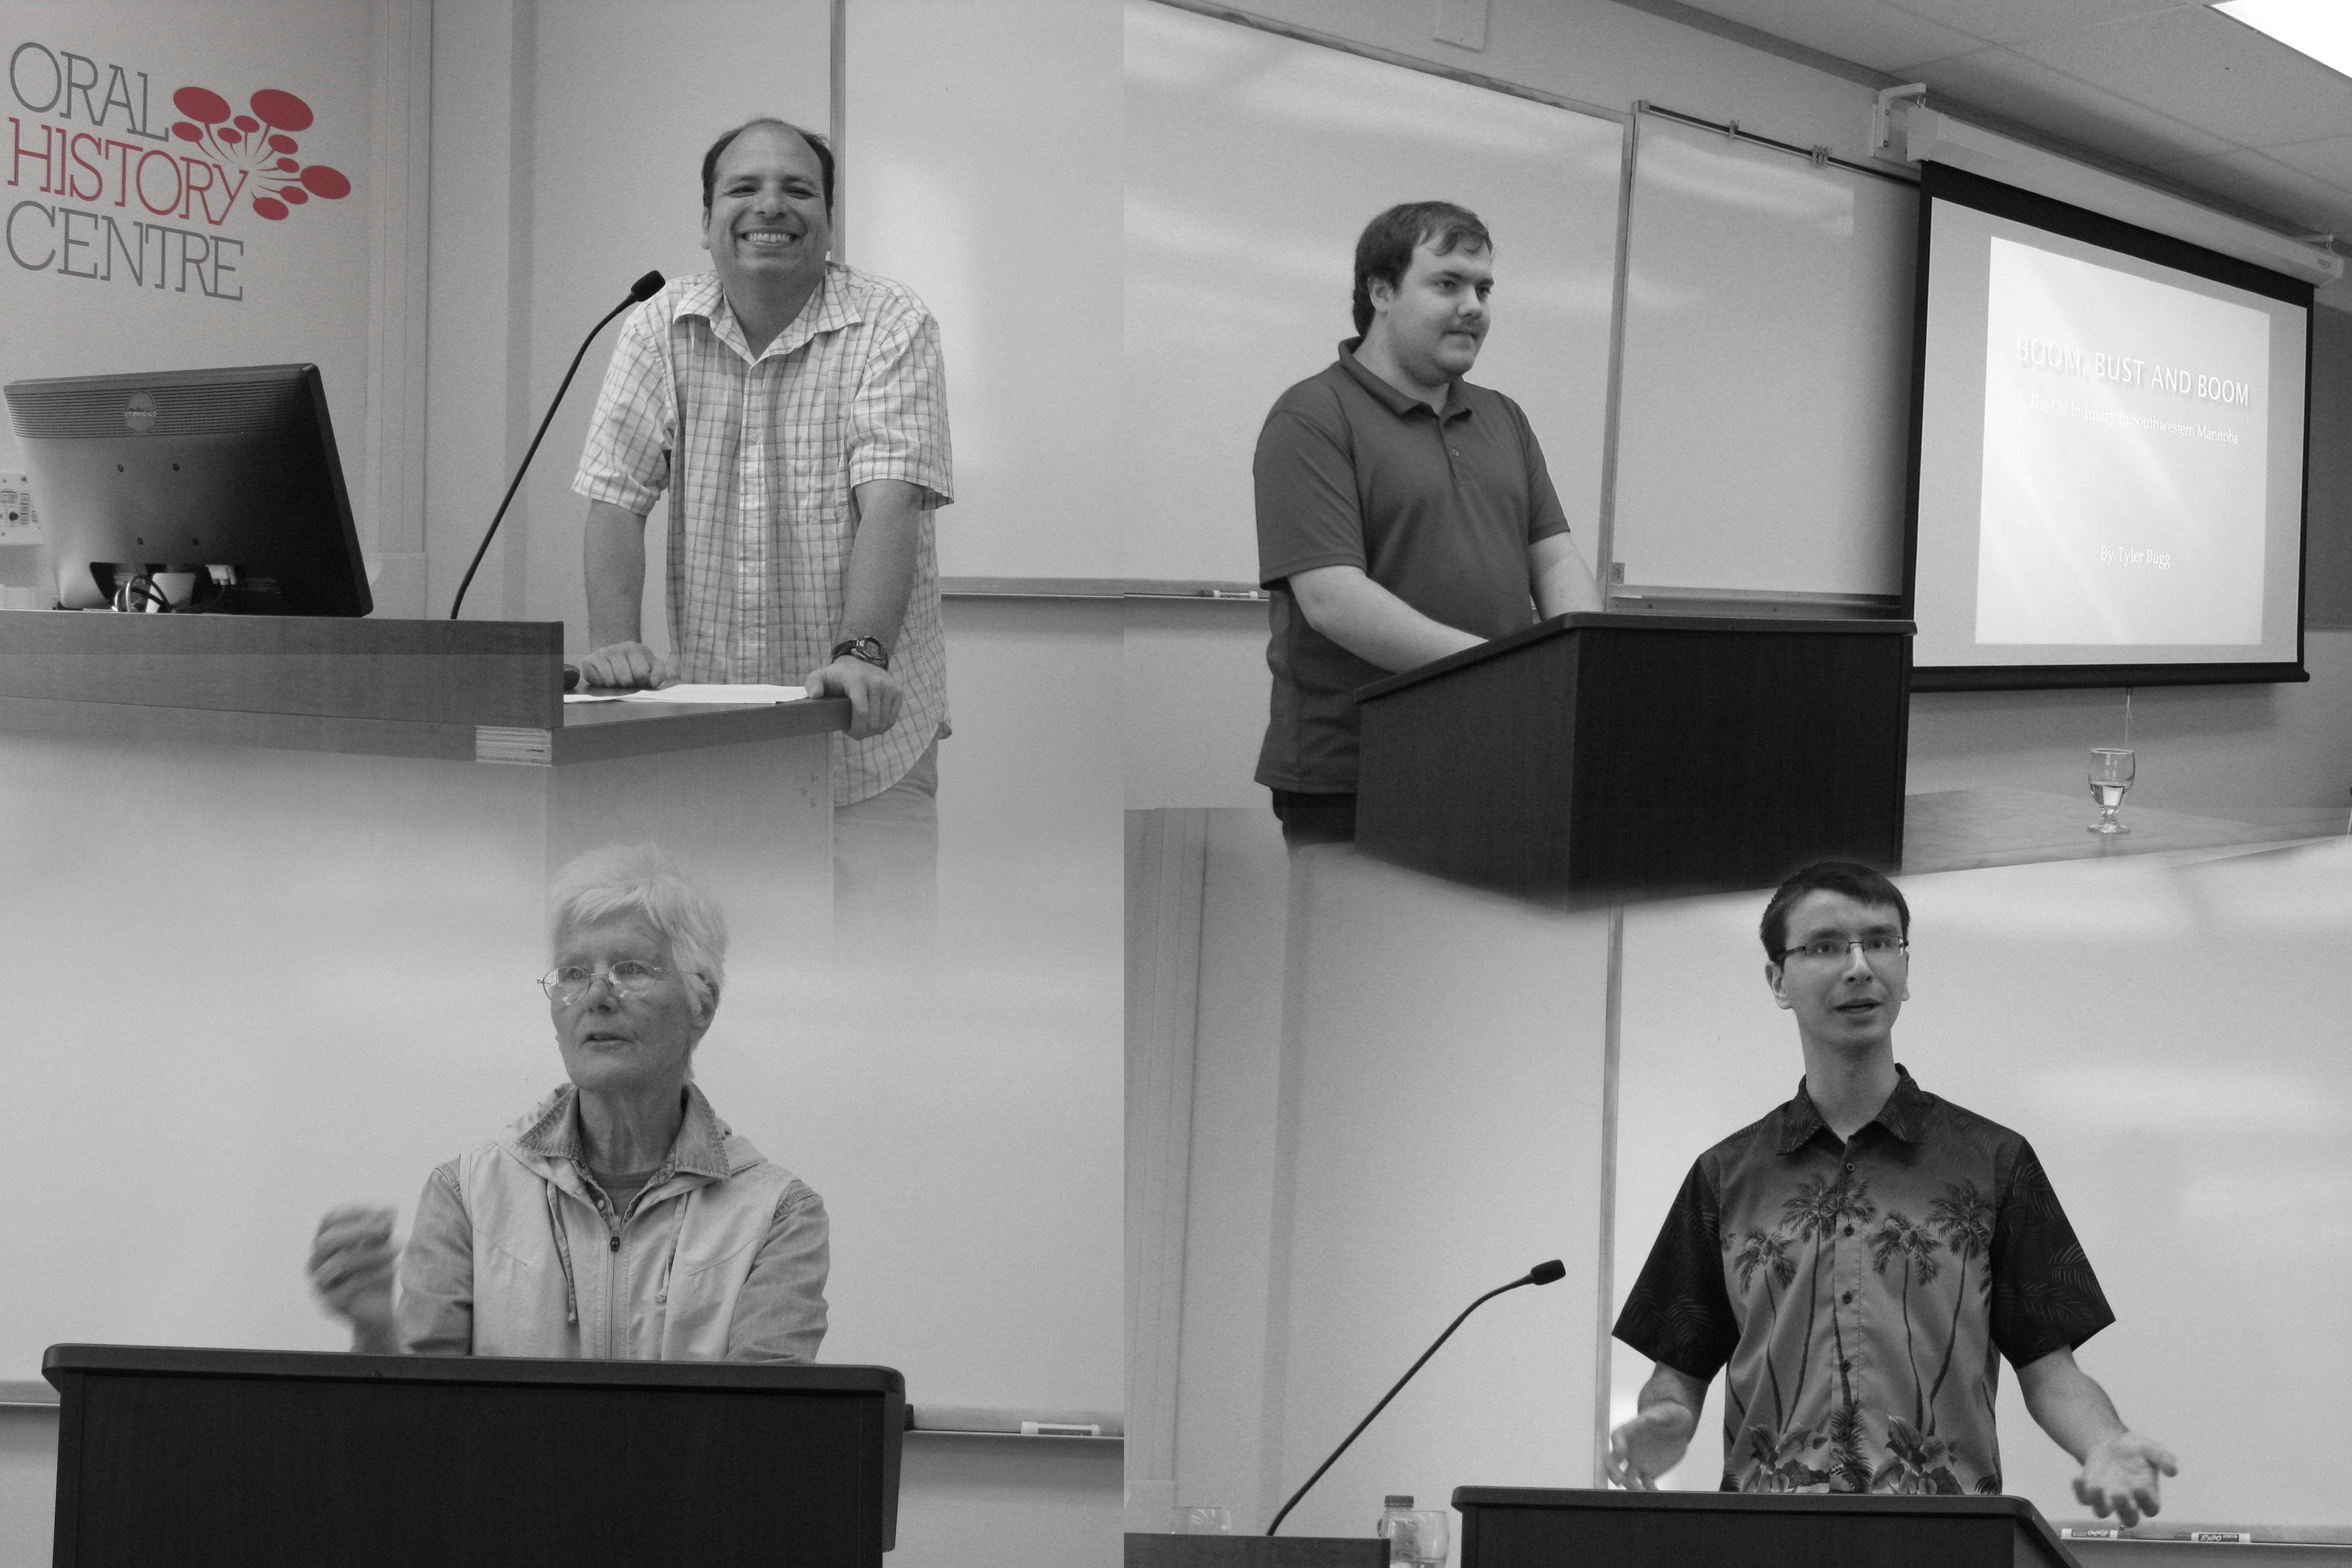 Oral History Student Conference, 2014